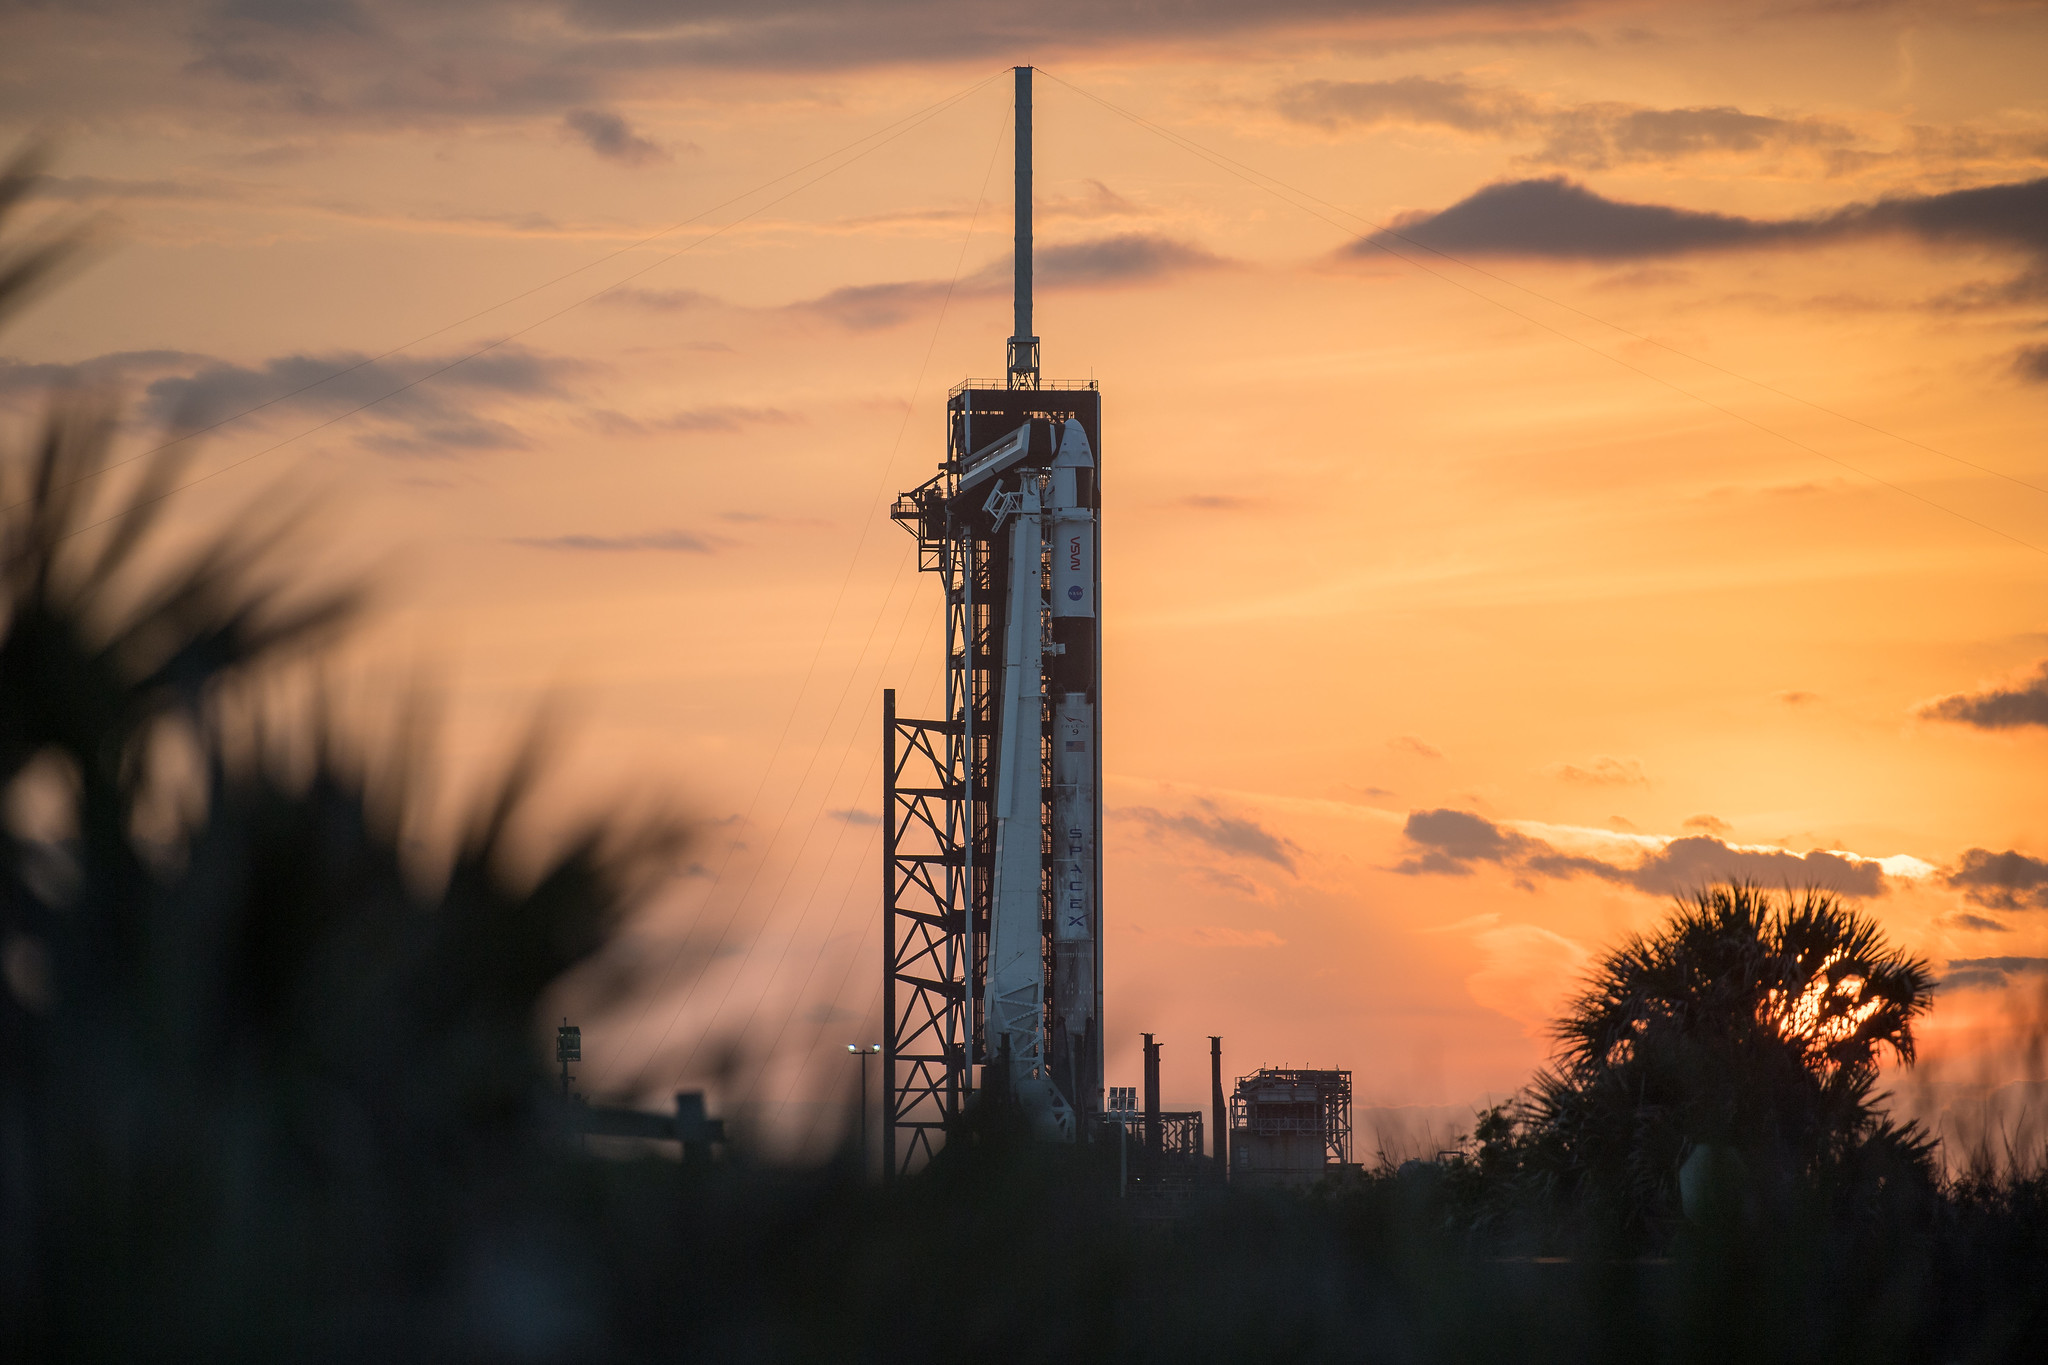 NASA Updates Launch Date, TV Coverage for Crew-2 Mission